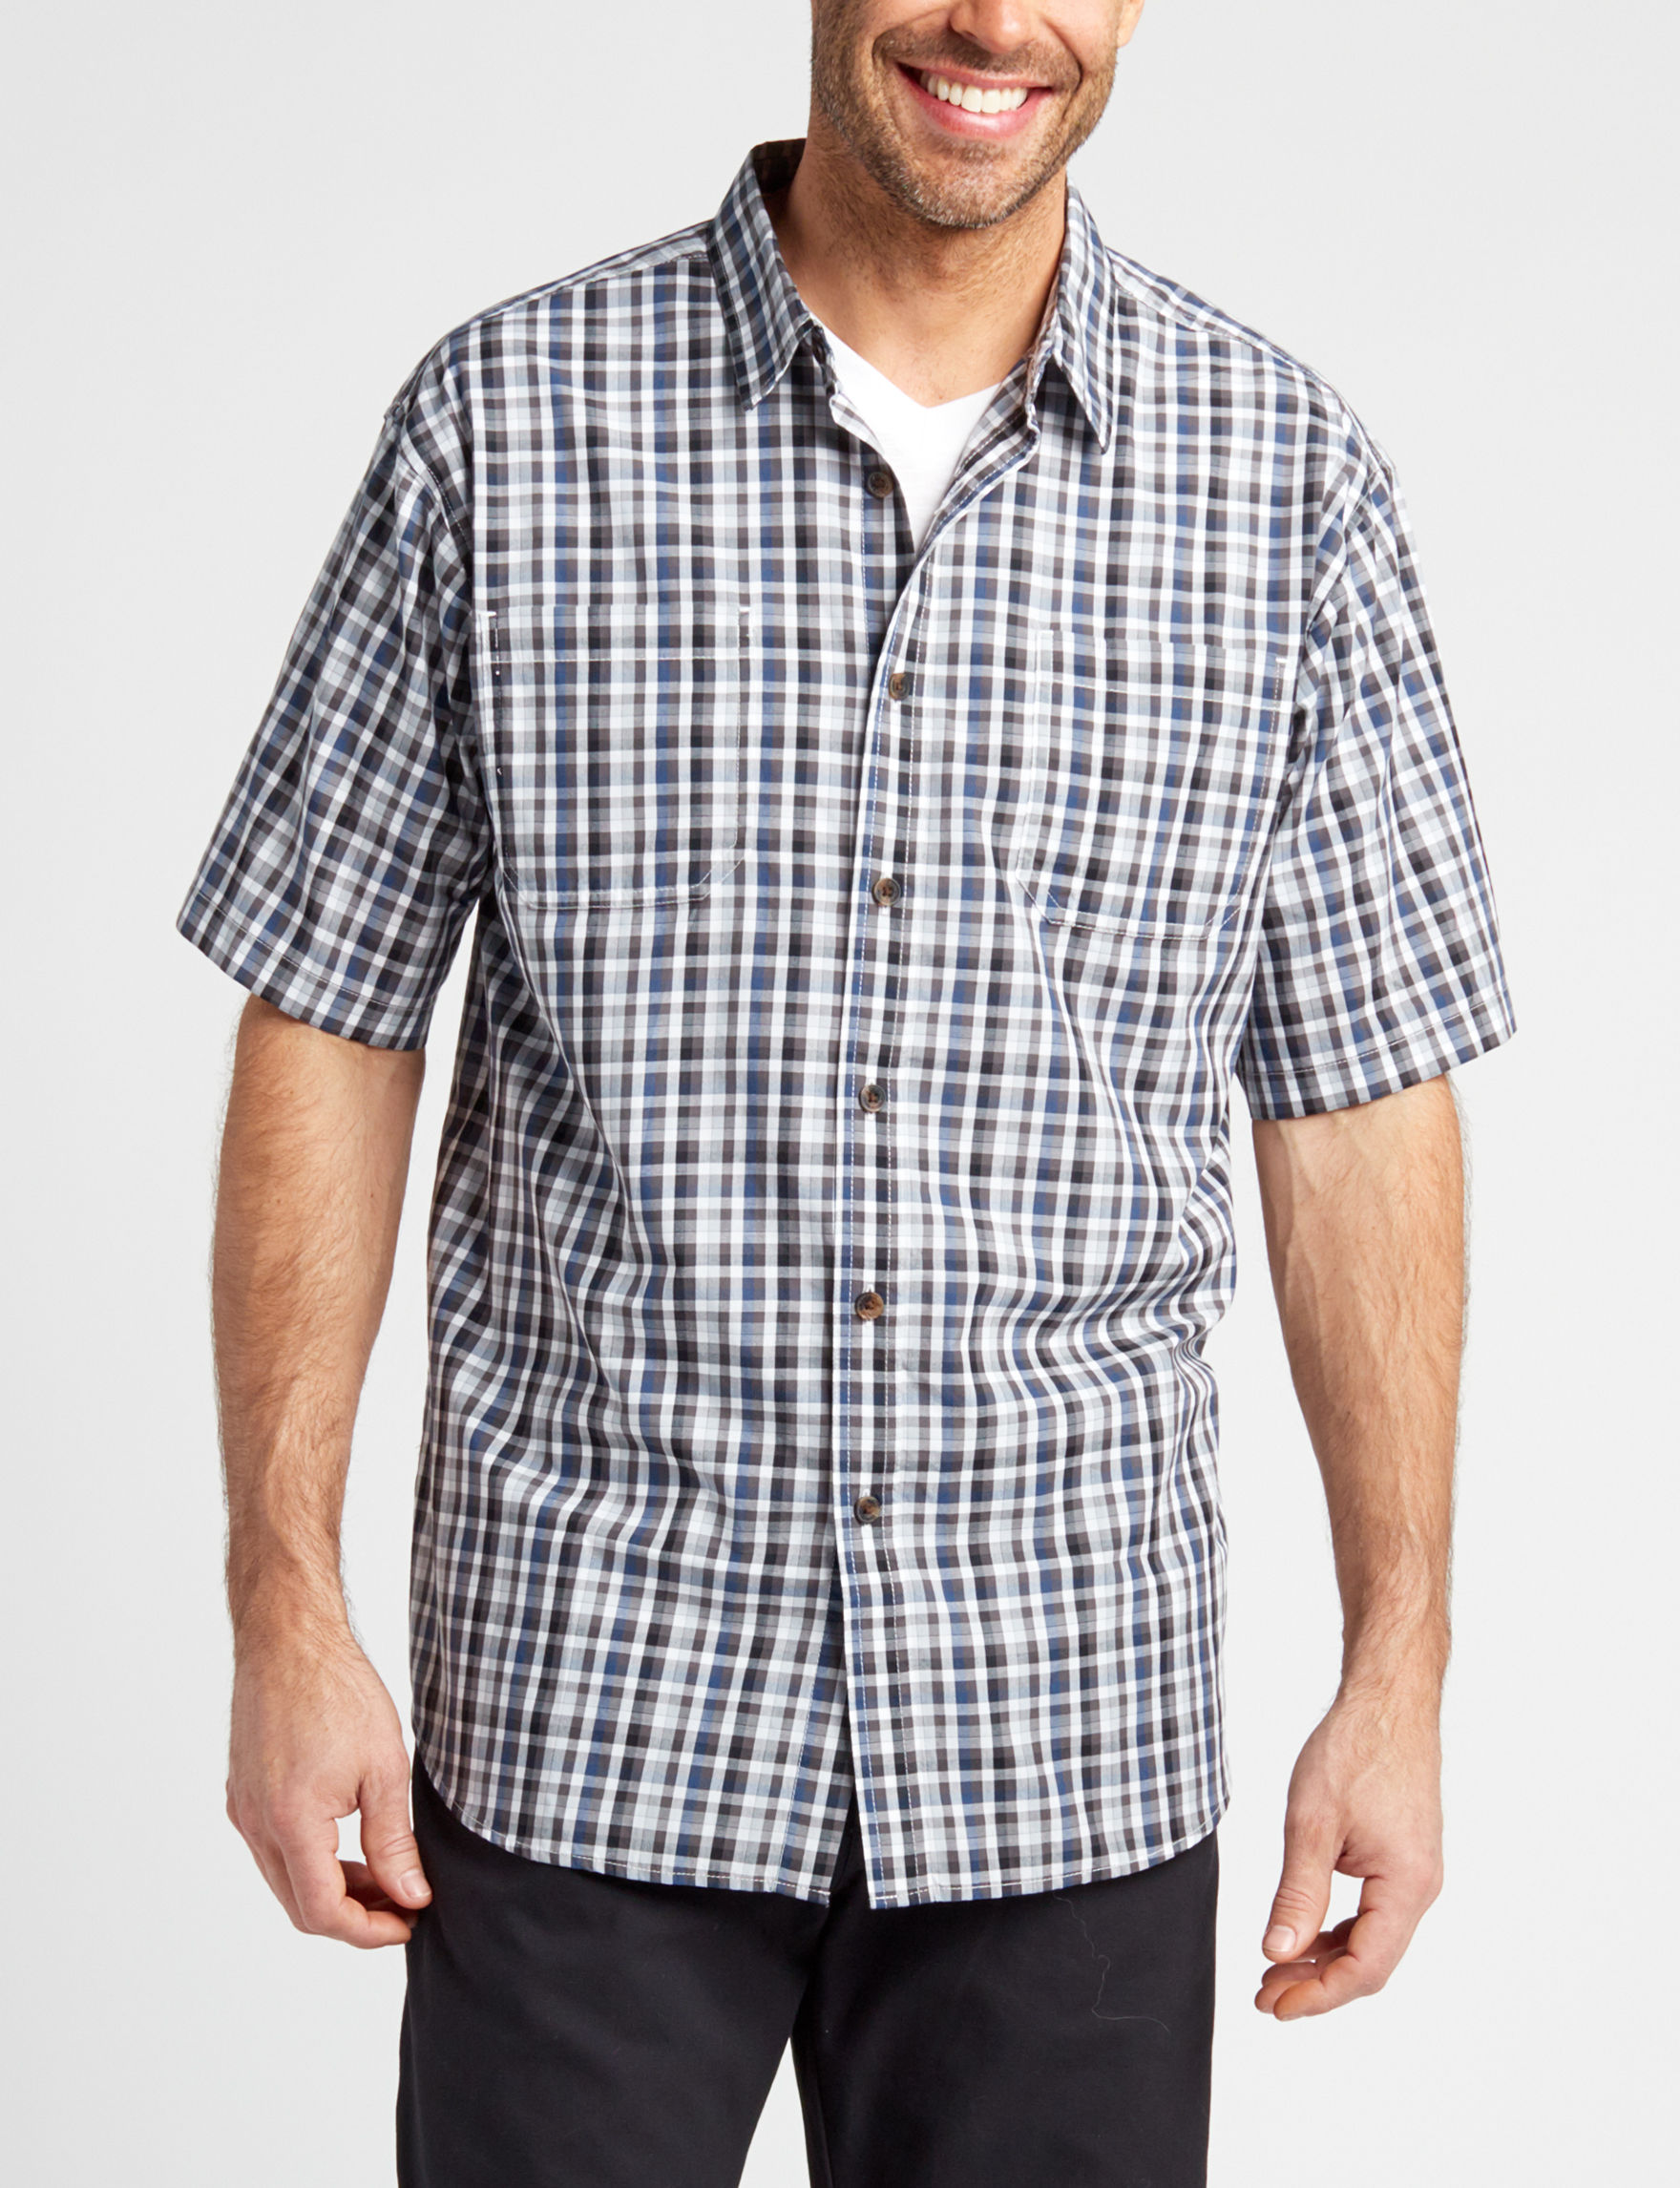 Dickies Black / White Casual Button Down Shirts